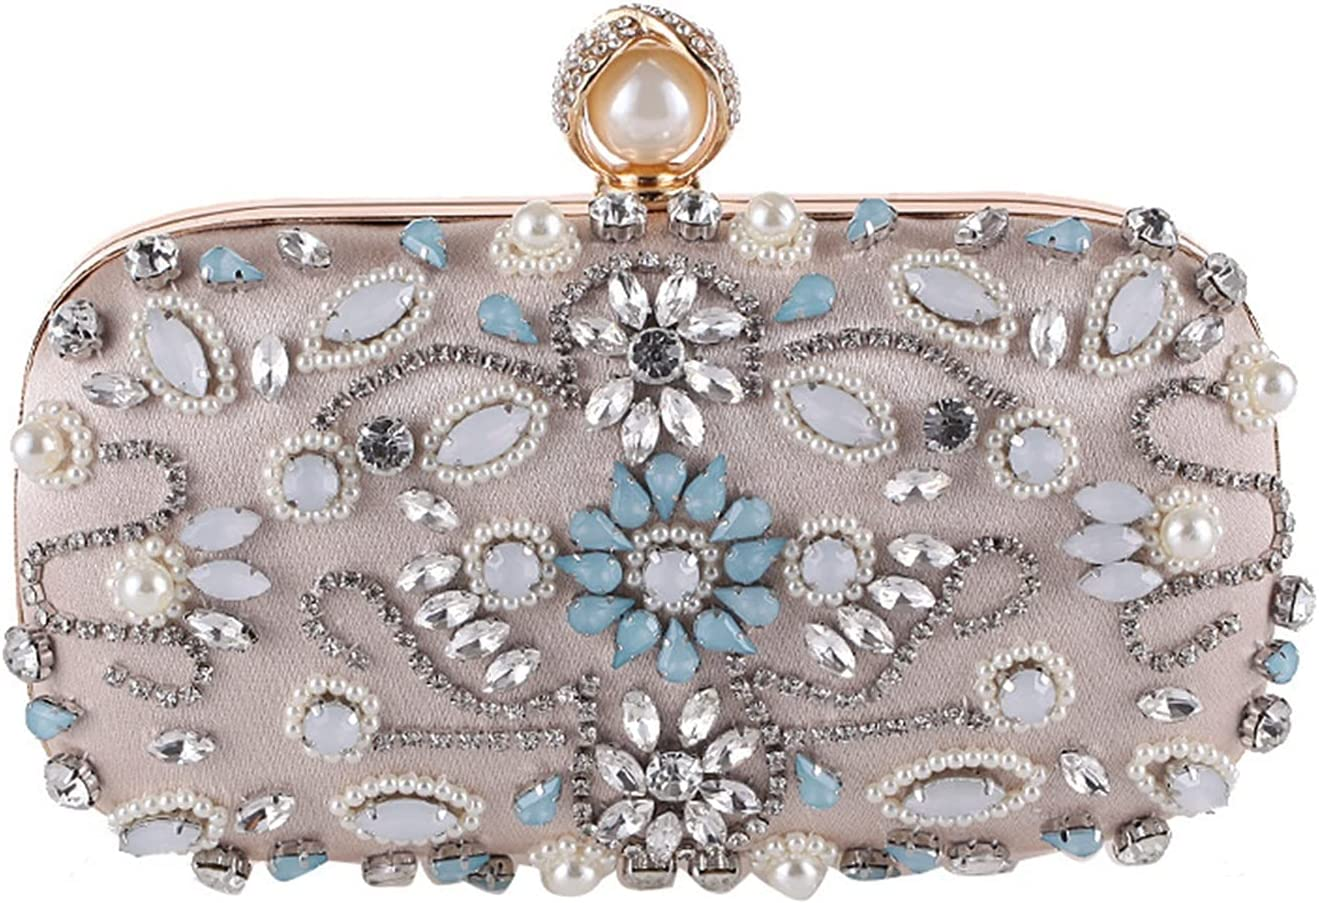 Max 45% OFF TOPOU Evening Clutch Luxury Crystal Women Challenge the lowest price of Japan Diamond